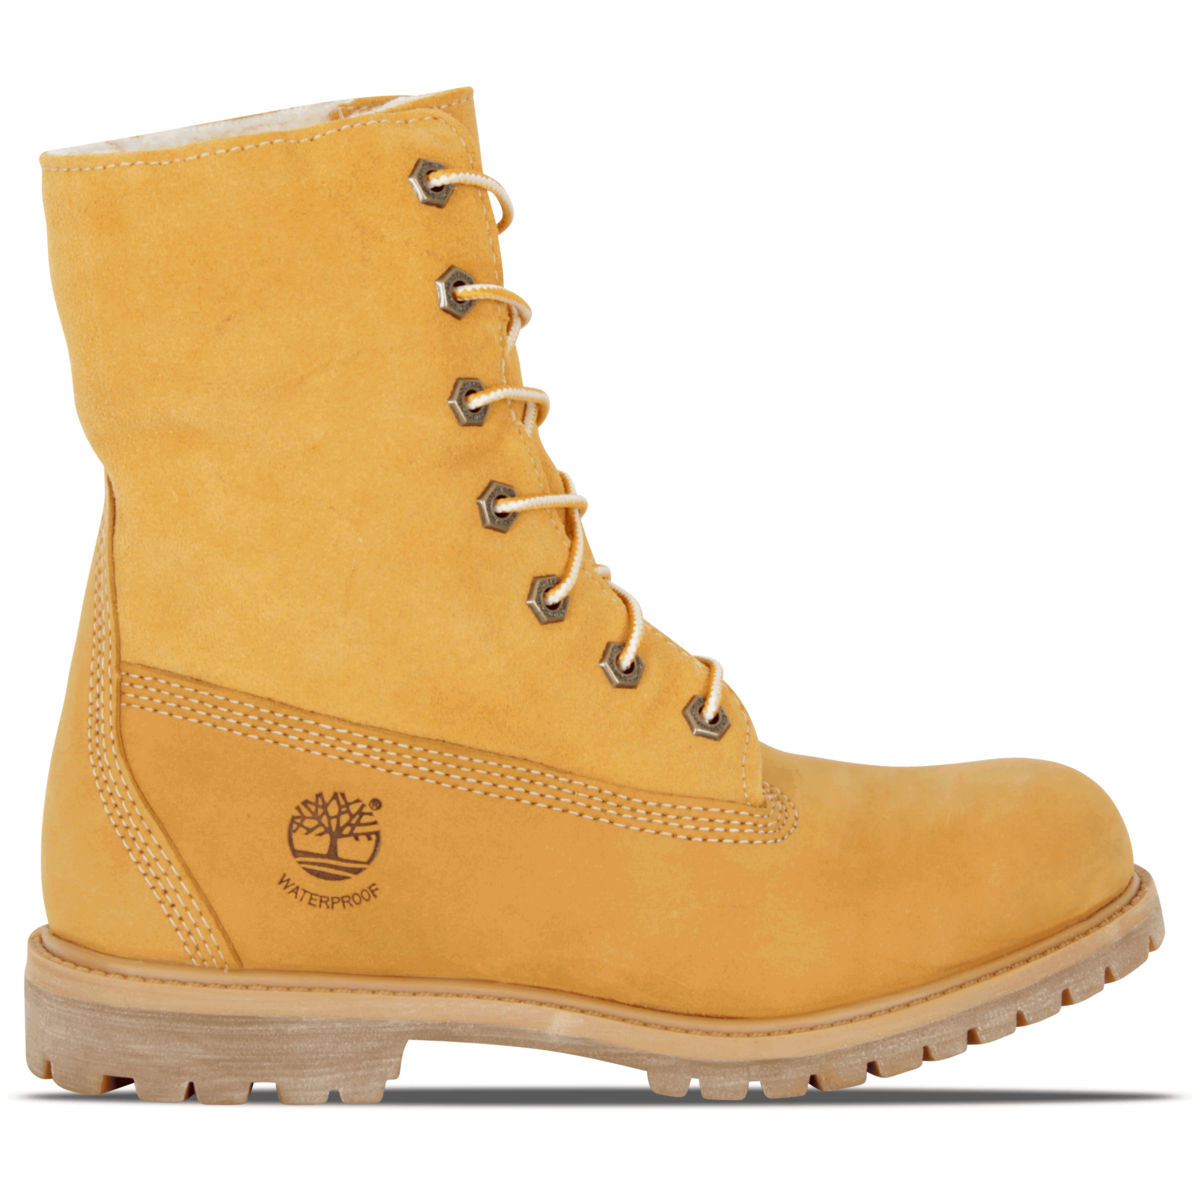 Timberland - Authentic - Dame - Brun - Dame